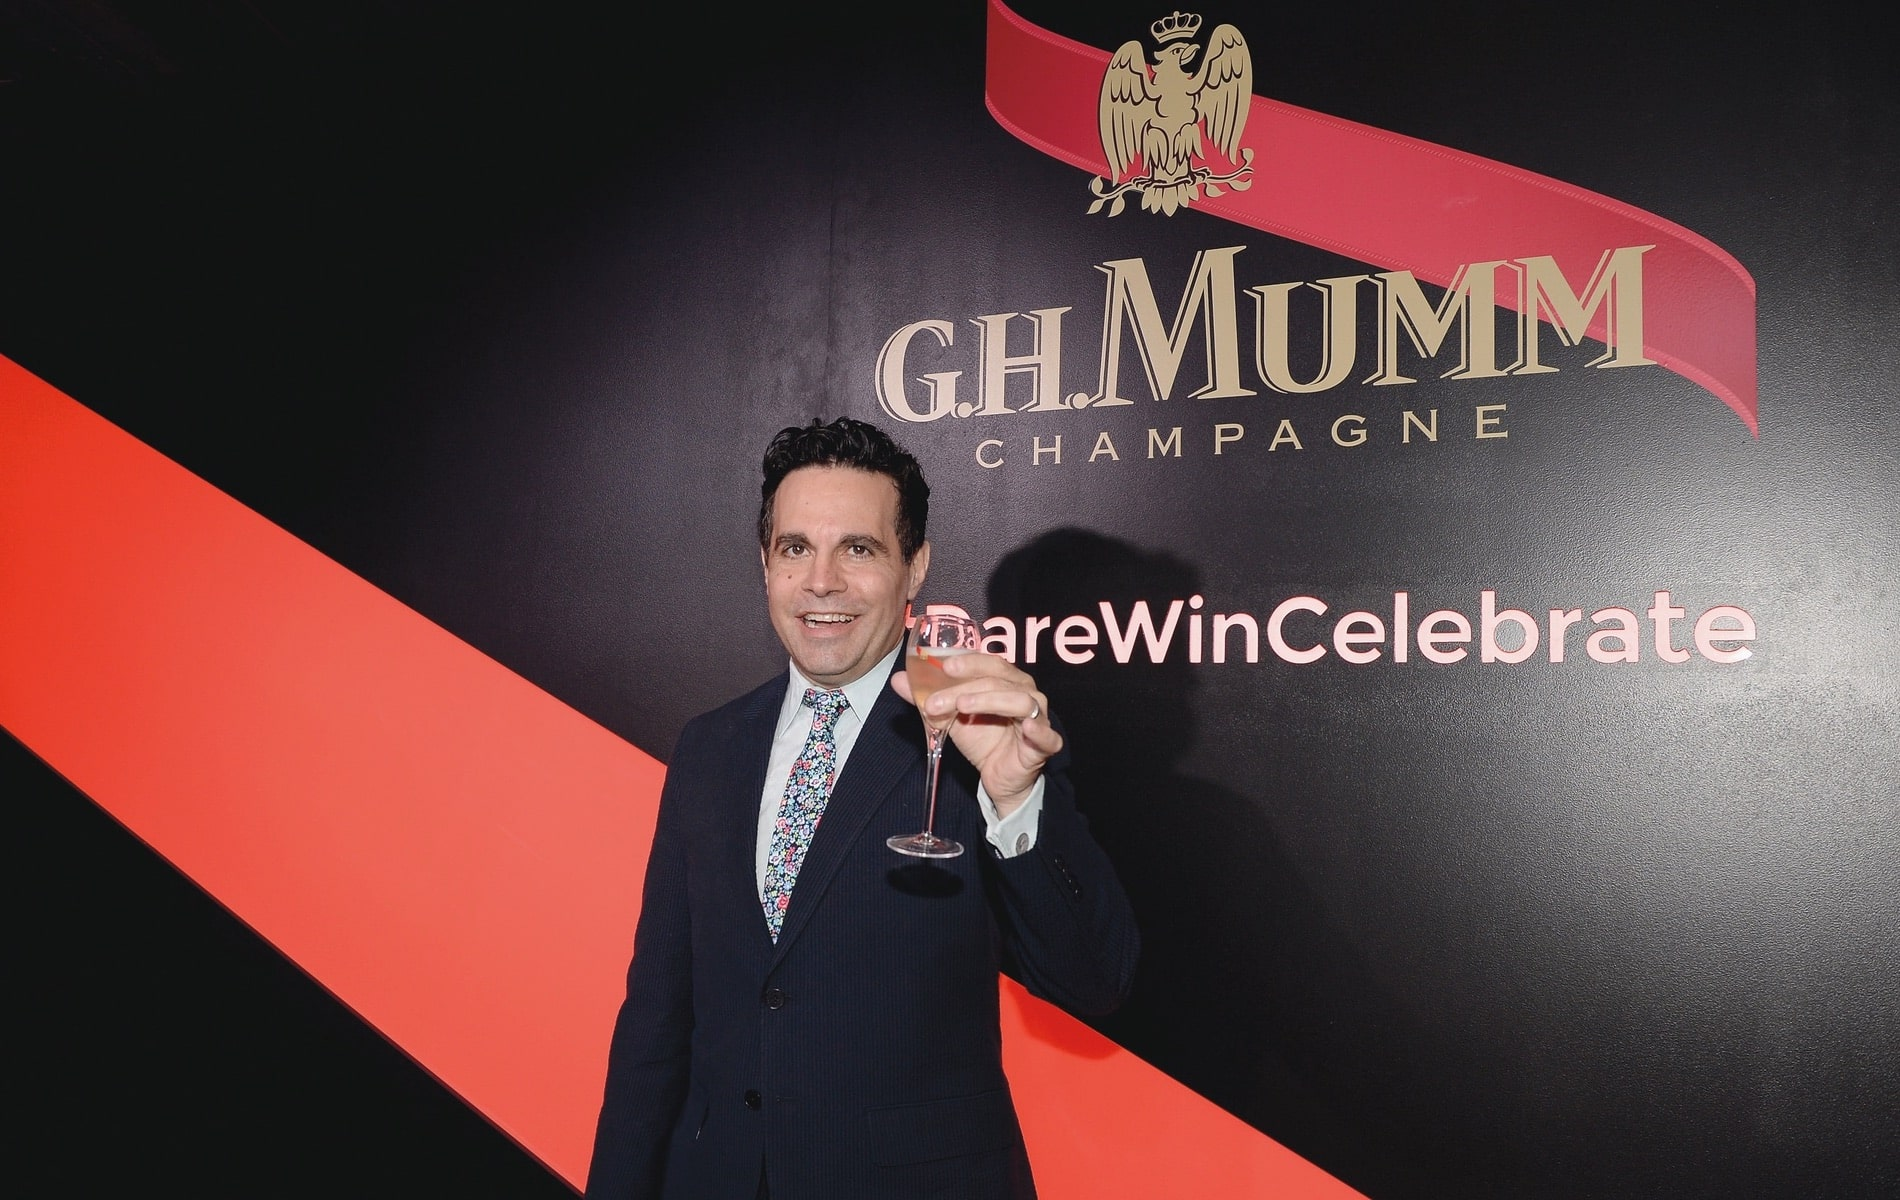 Arts Culture and Entertainment, Mario Cantone, New York City, Kentucky Derby, G.H. Mumm